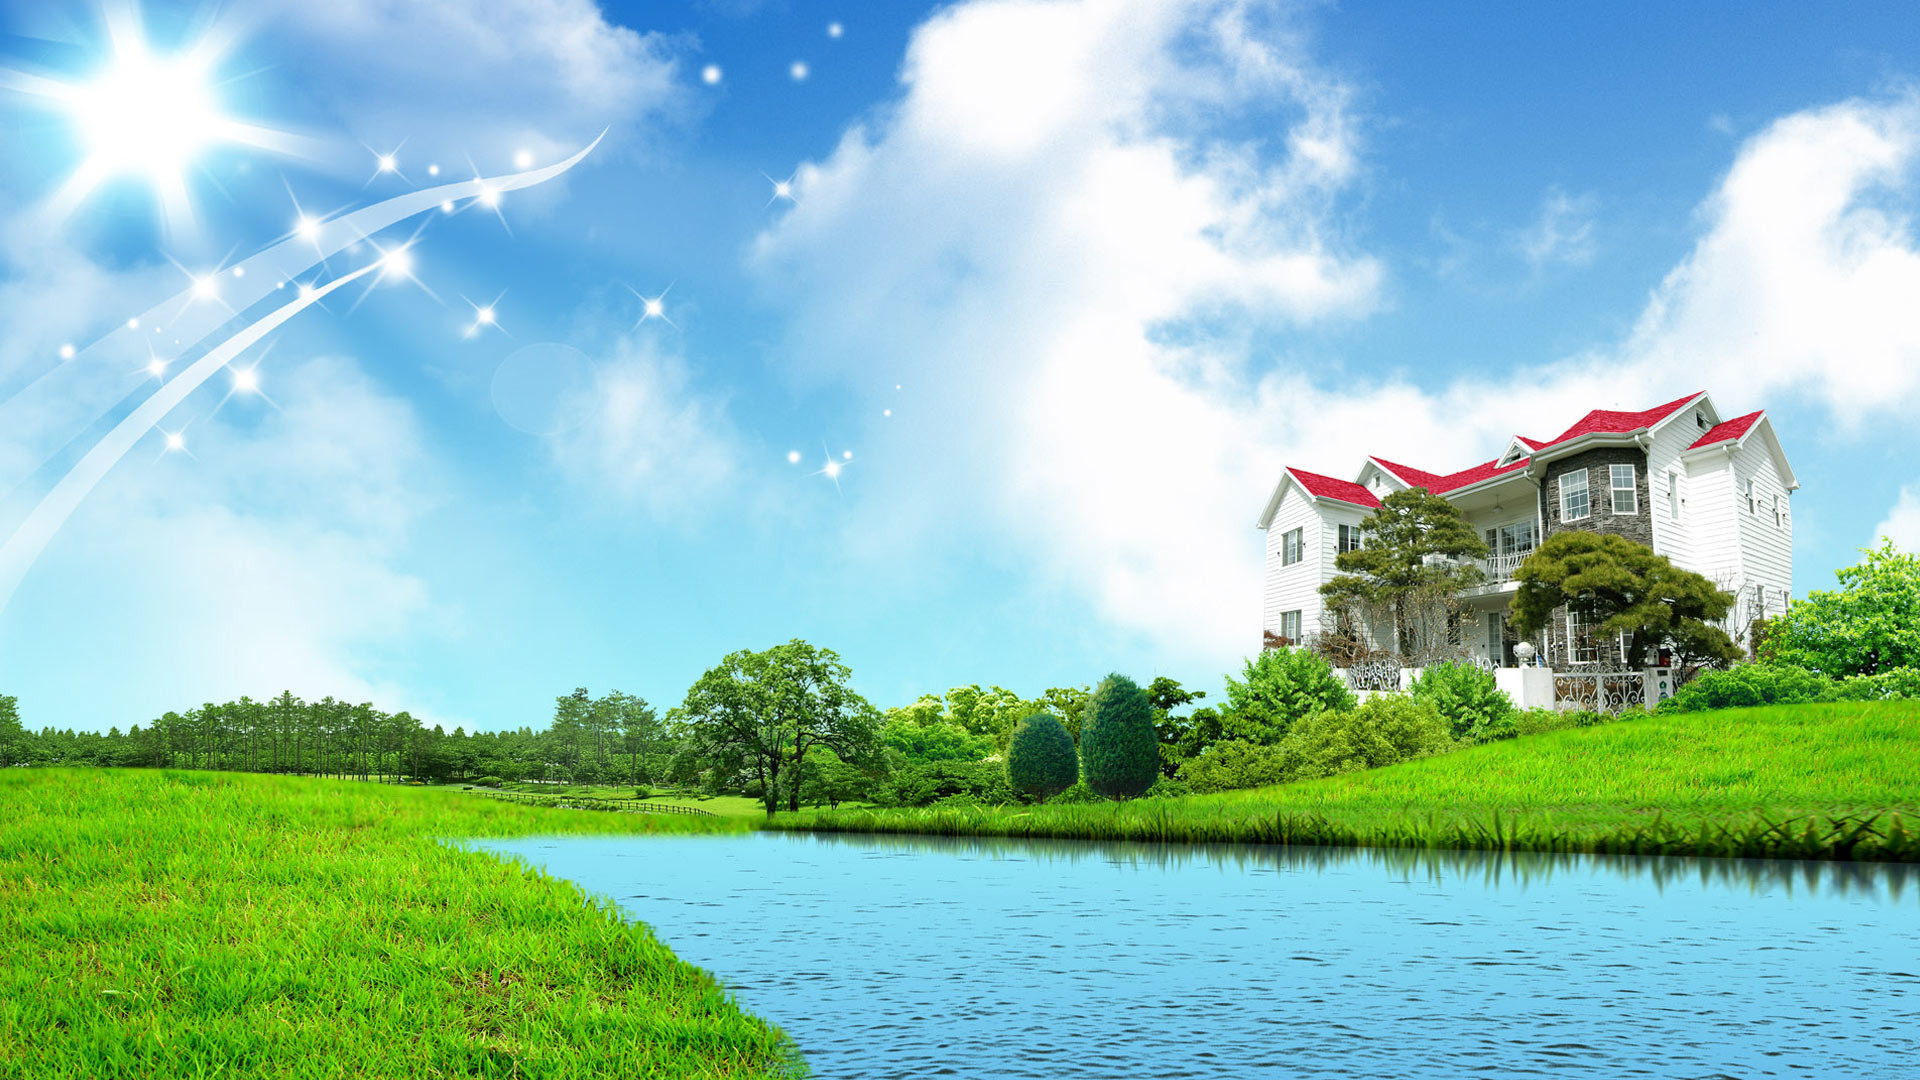 1920x1080 wallpaper.wiki-Sweet-home-fantasy-green-nature-wallpapers-